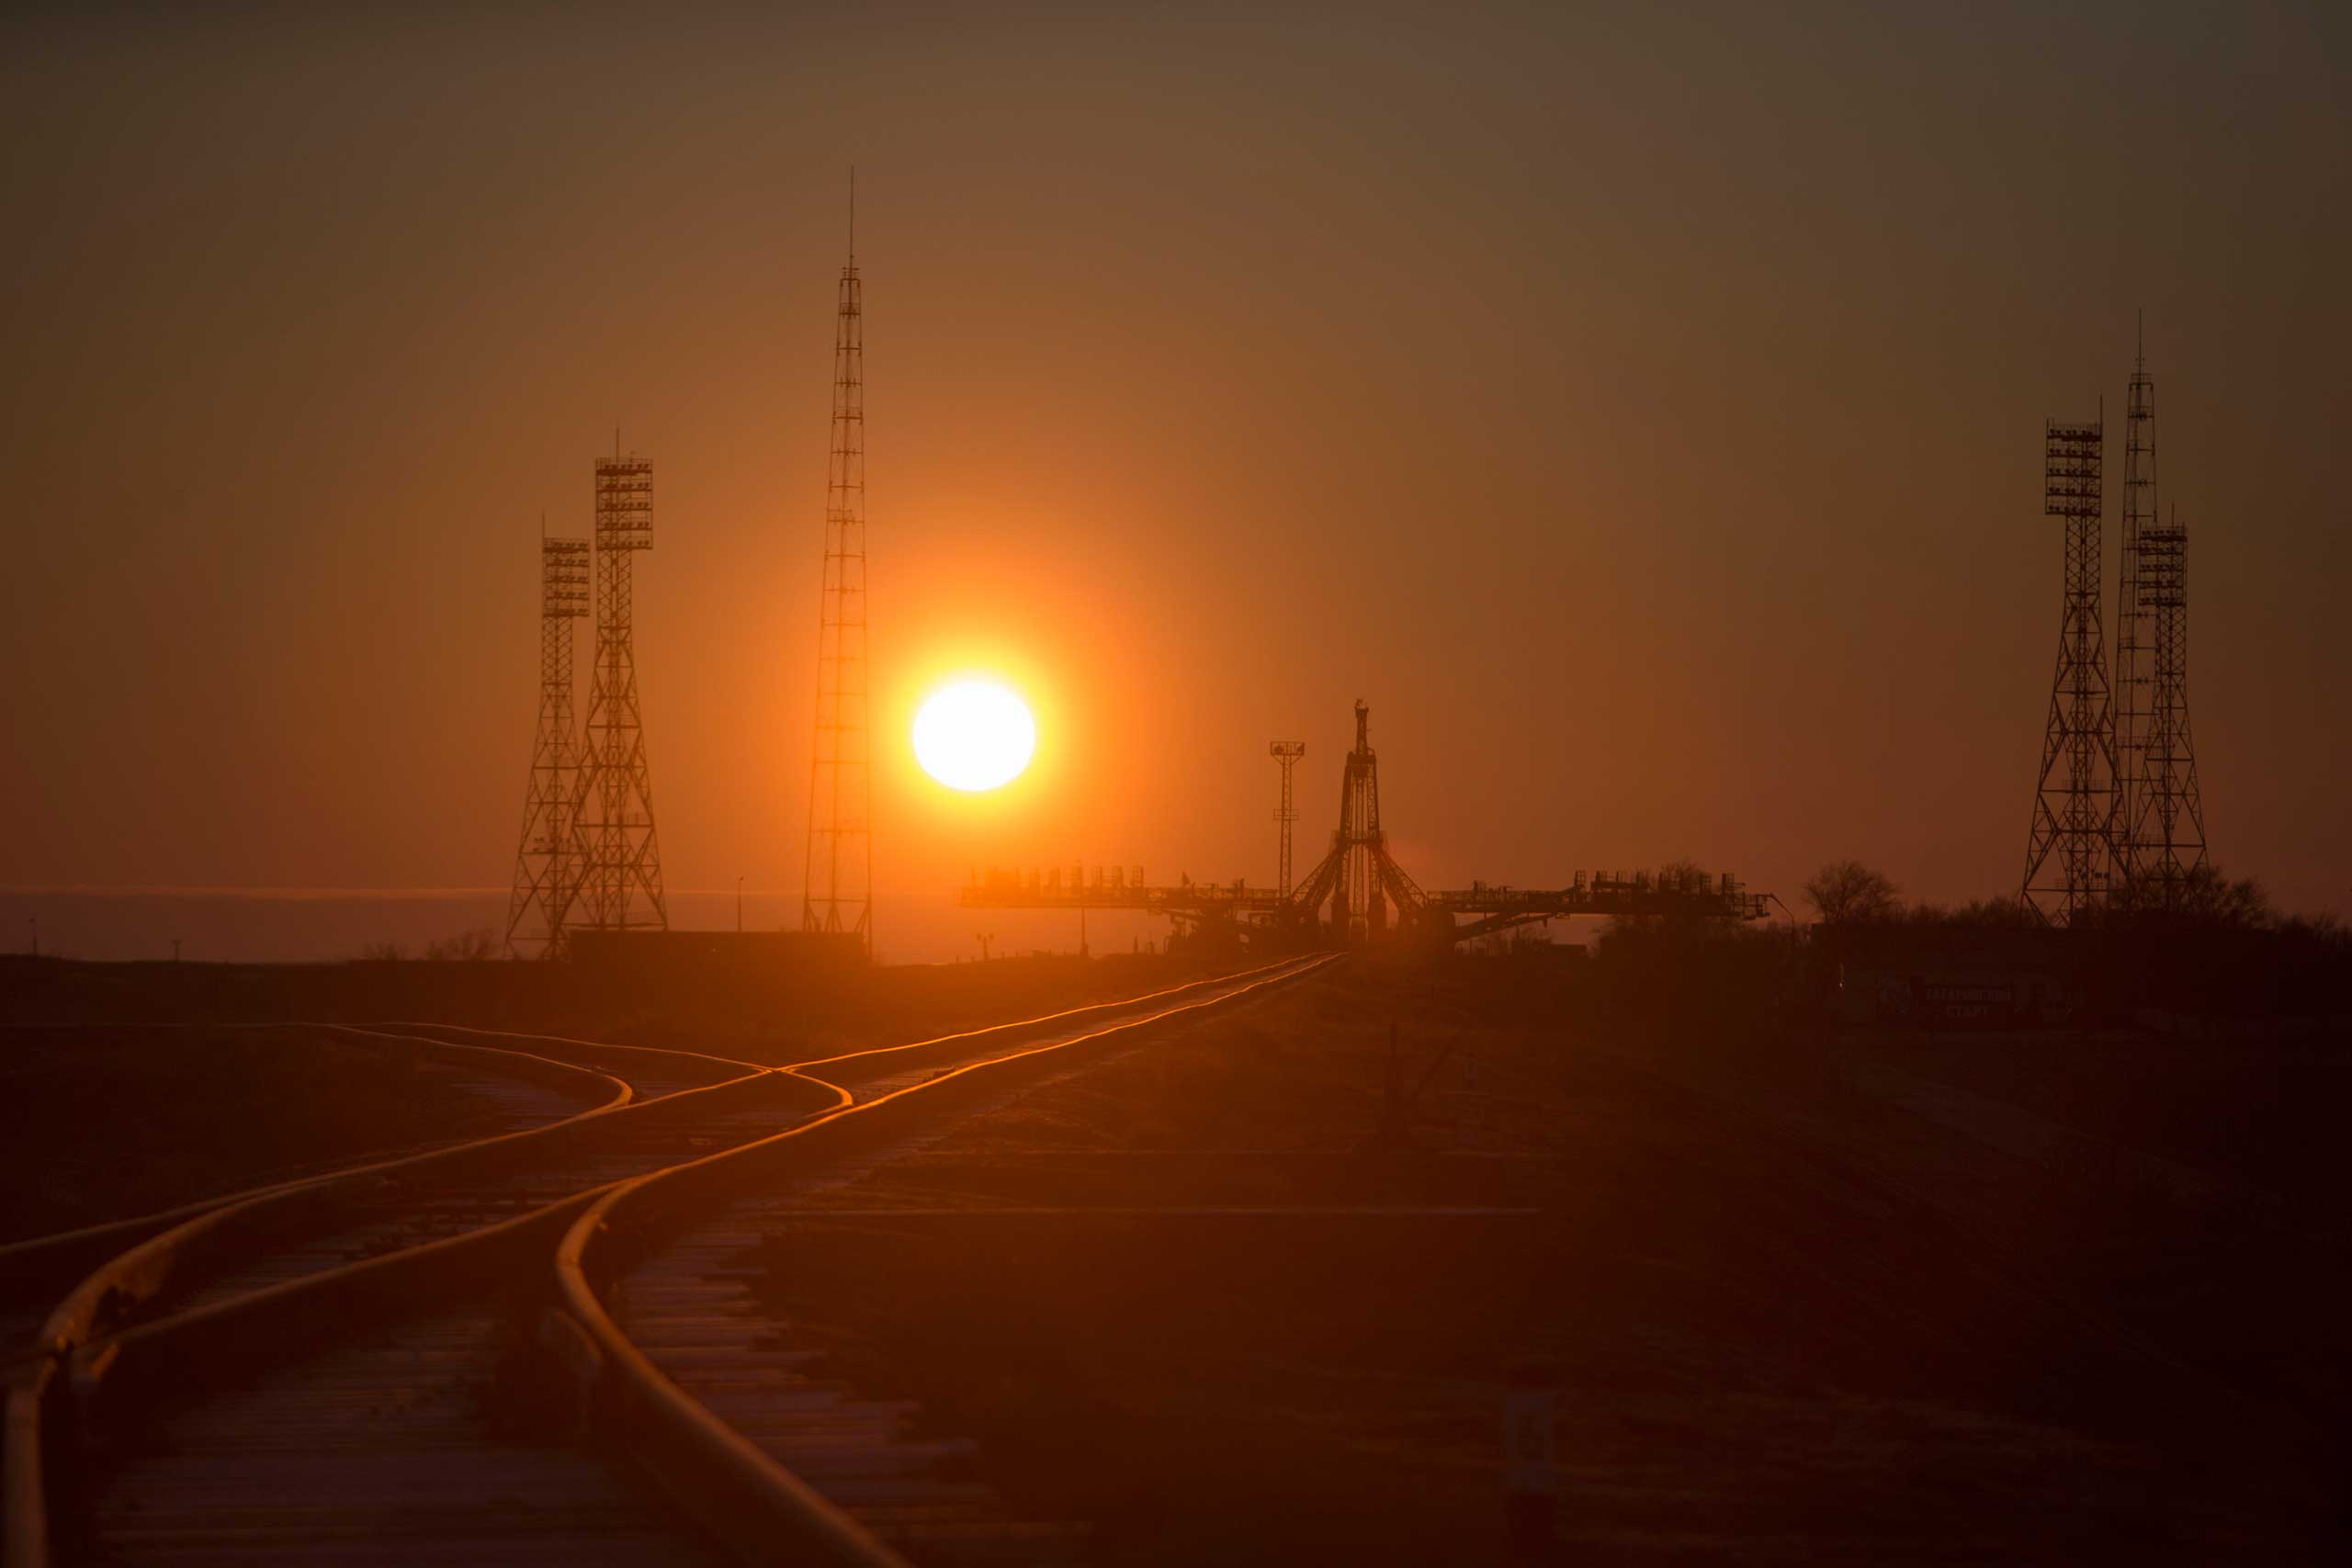 The sunrise silhouettes the structure that helps stabilize and service the Soyuz at the Baikonur Cosmodrome in Kazakhstan on Wednesday, March 25.